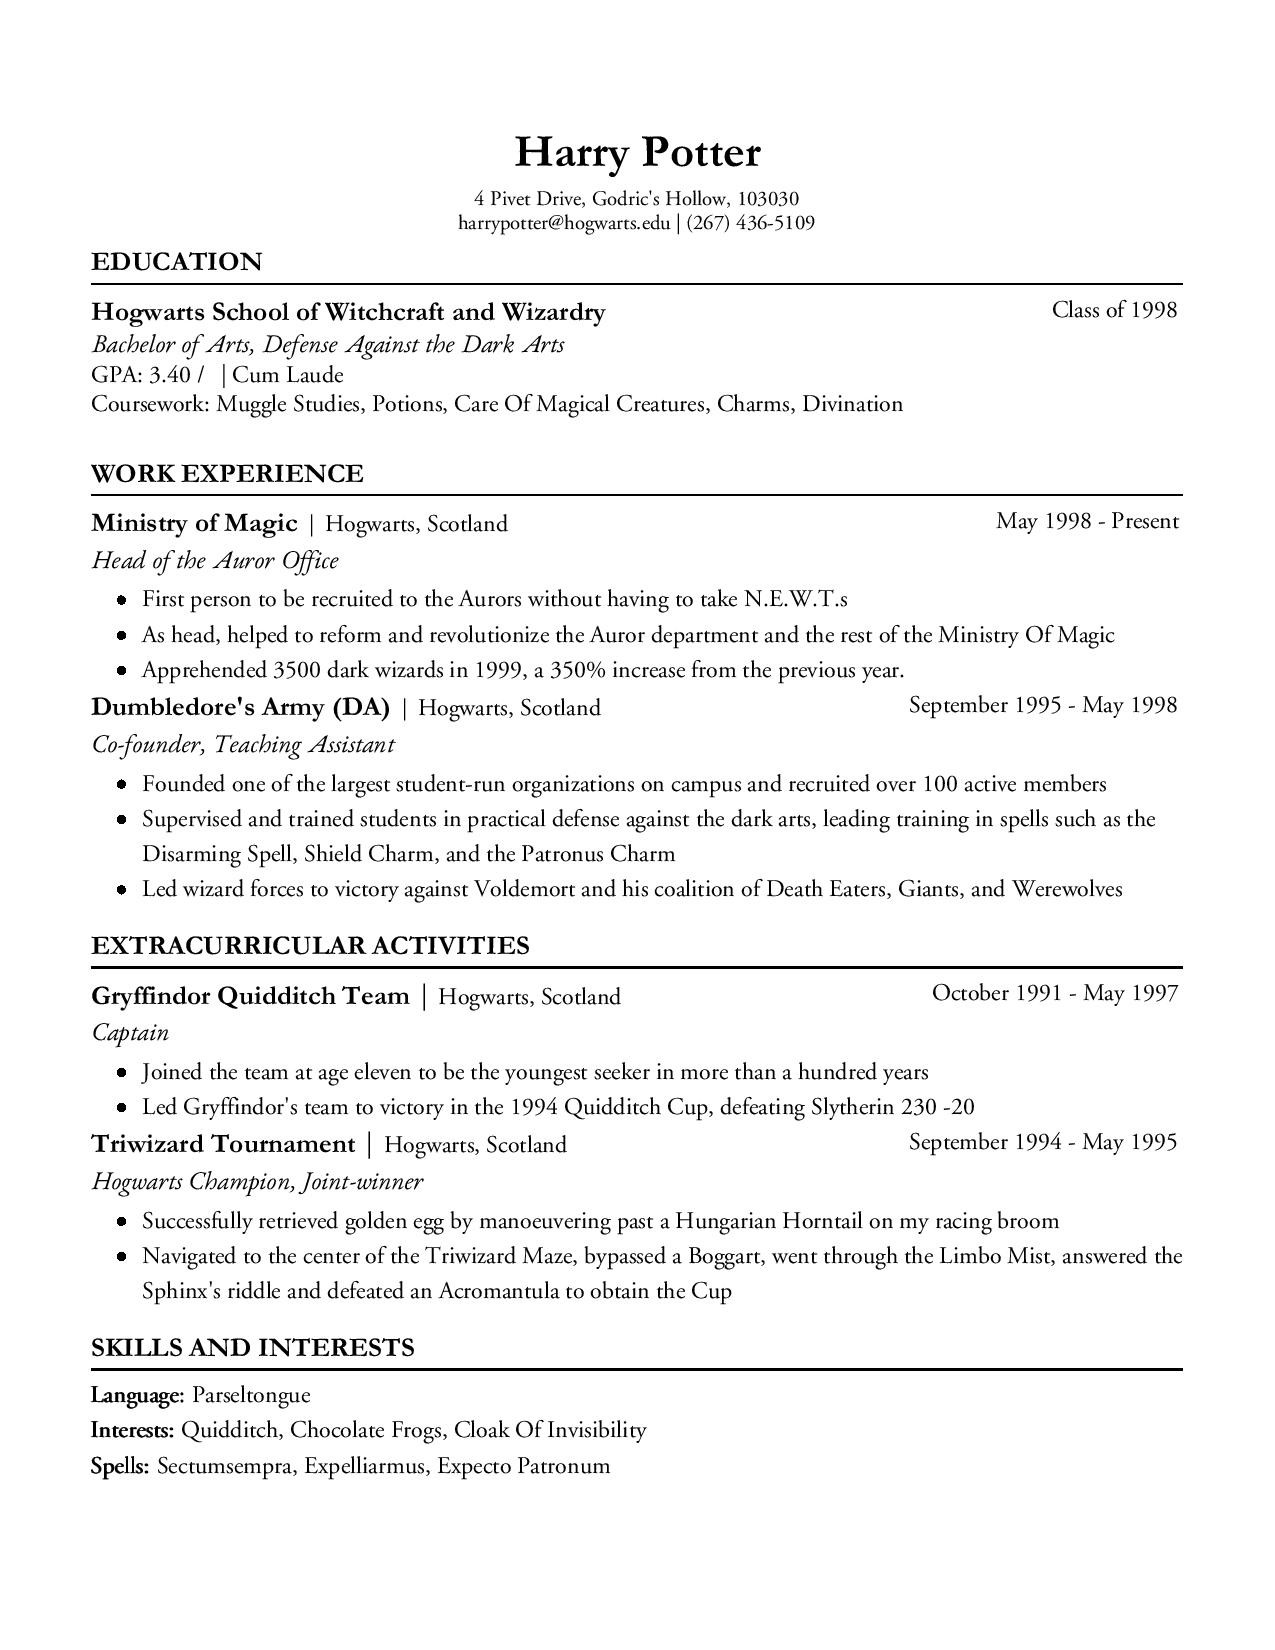 harry potters resume built with resumegem - Effective Resume